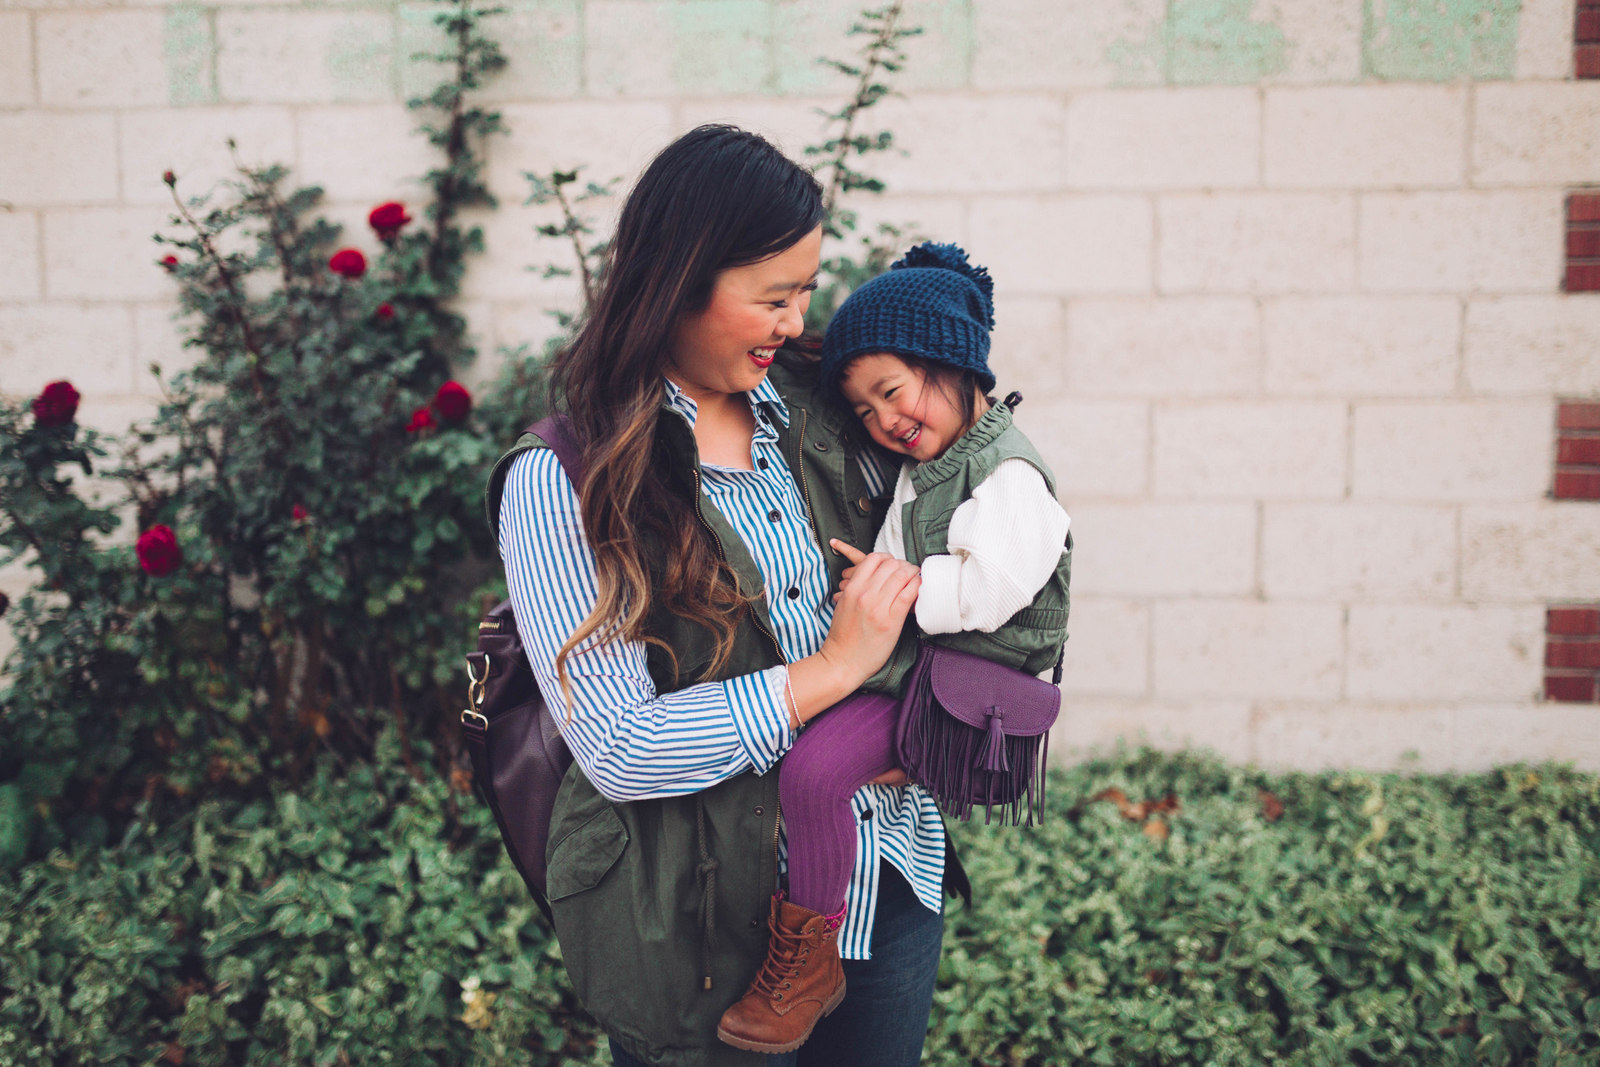 Mommy and Me Outfits: Vests and Cozy Boots